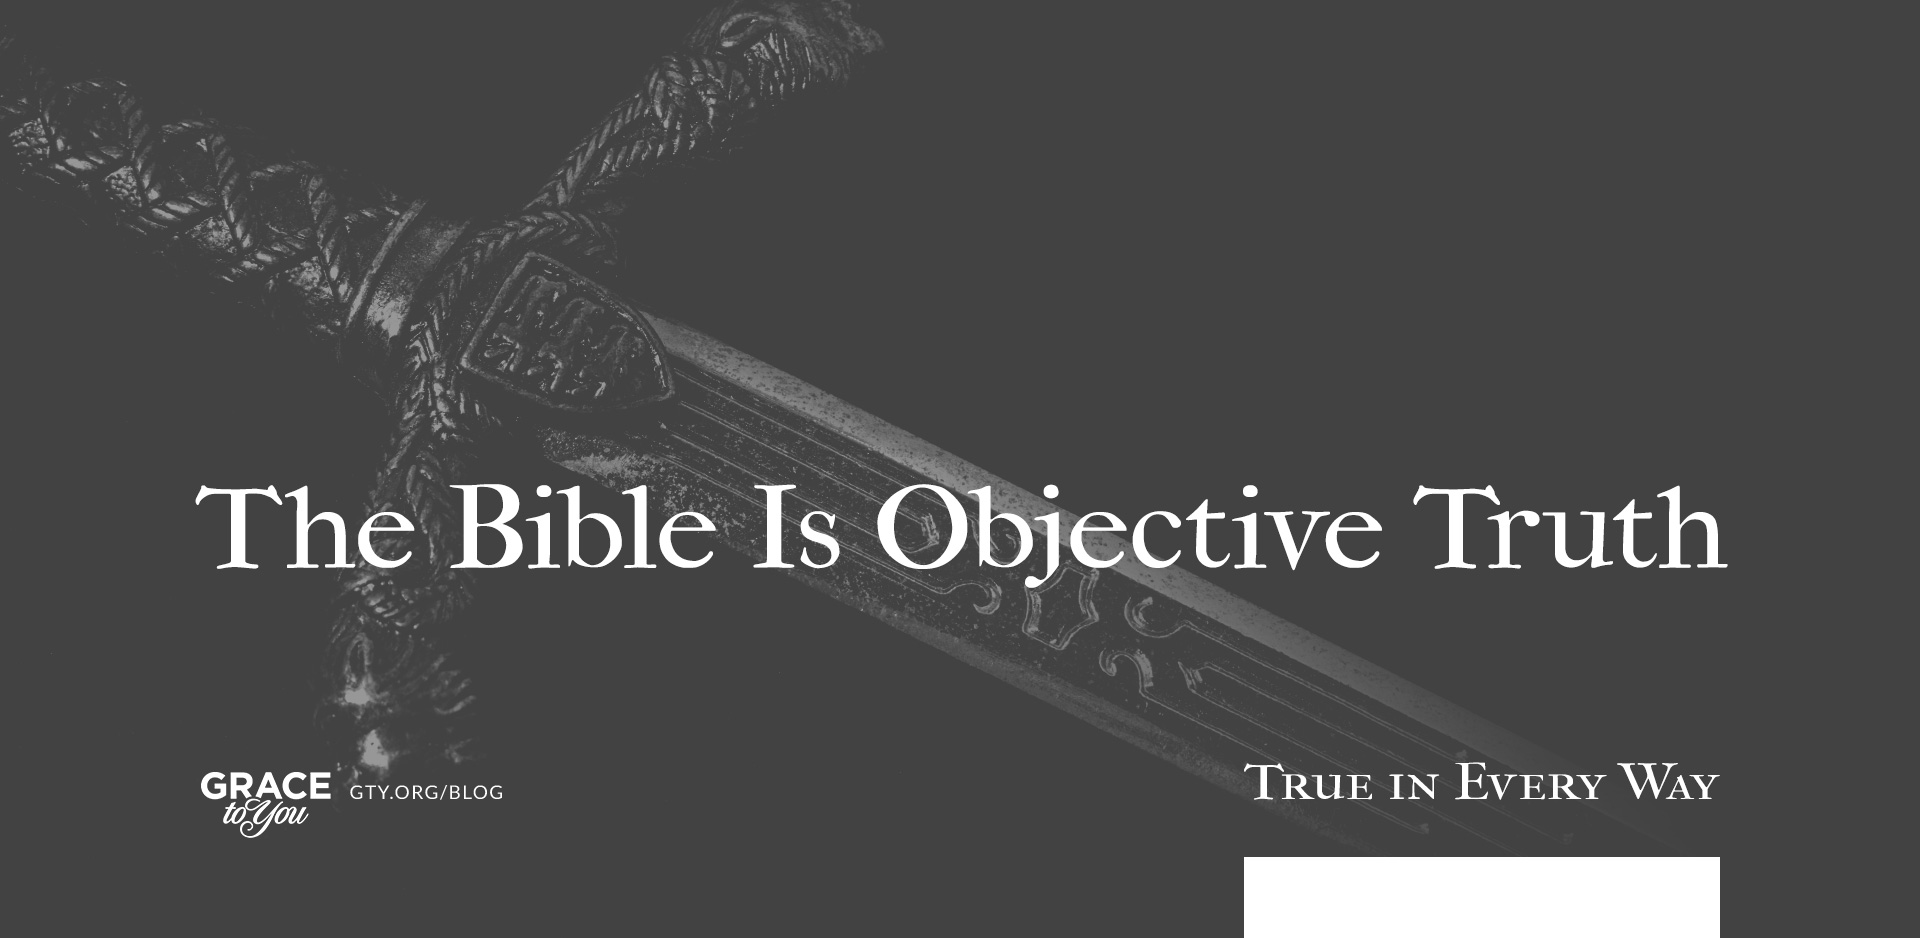 The Bible Is Objective Truth